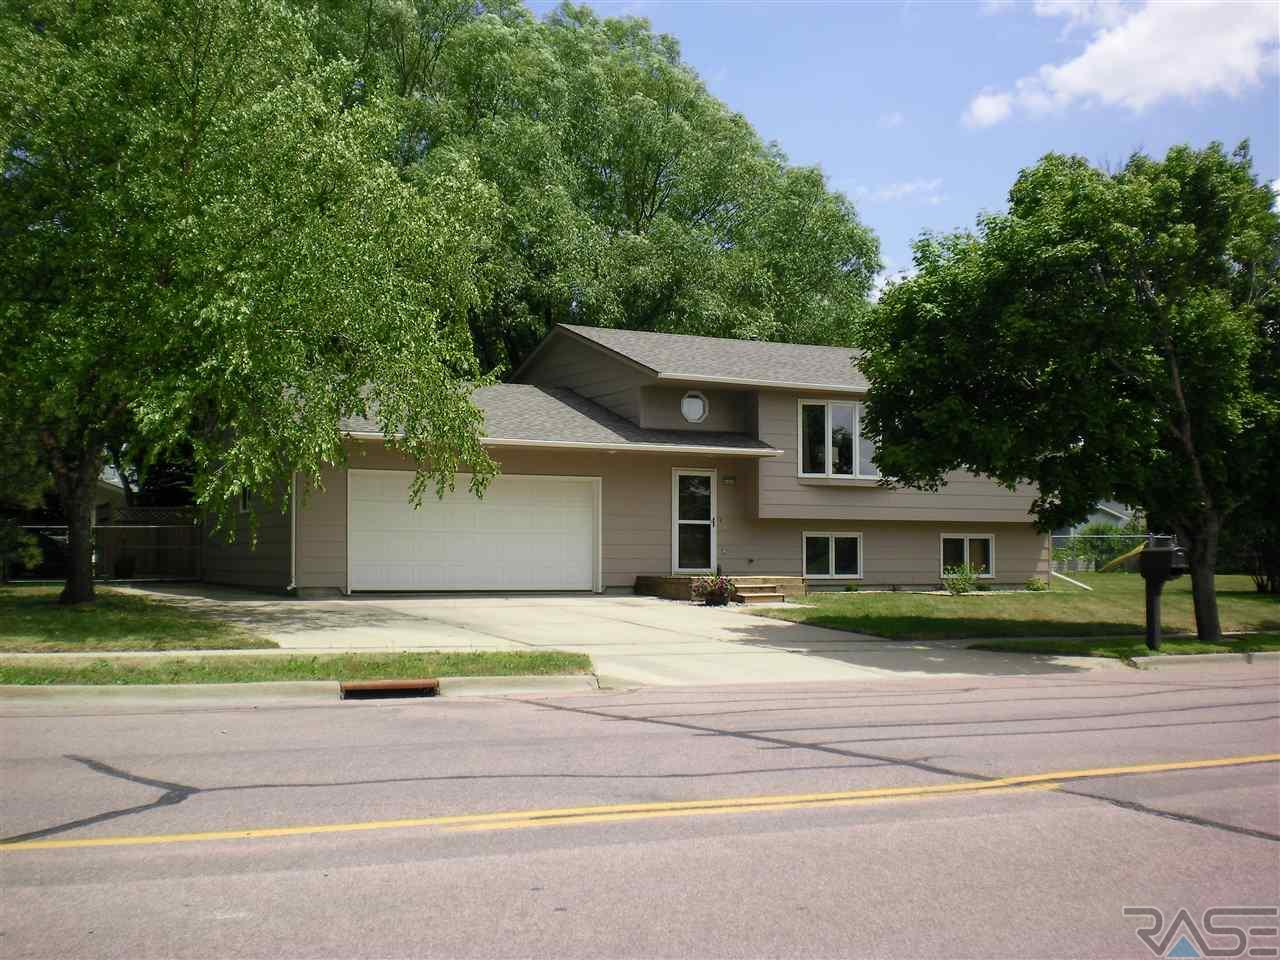 4600 S Sertoma Ave, SIOUX FALLS